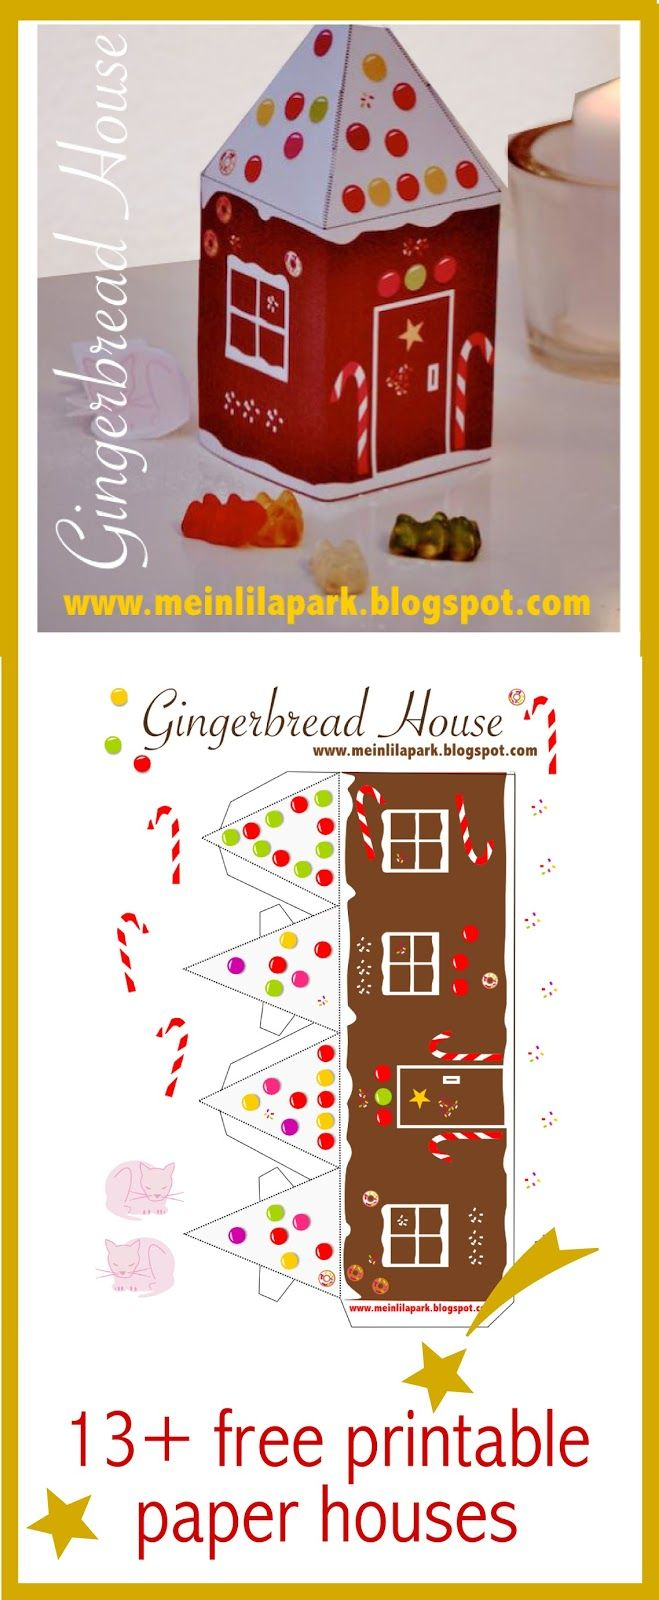 png und clipart  ♥ free digital and printable png's and scrapbooking elements for paper crafting for digital scrapbooking and card making.